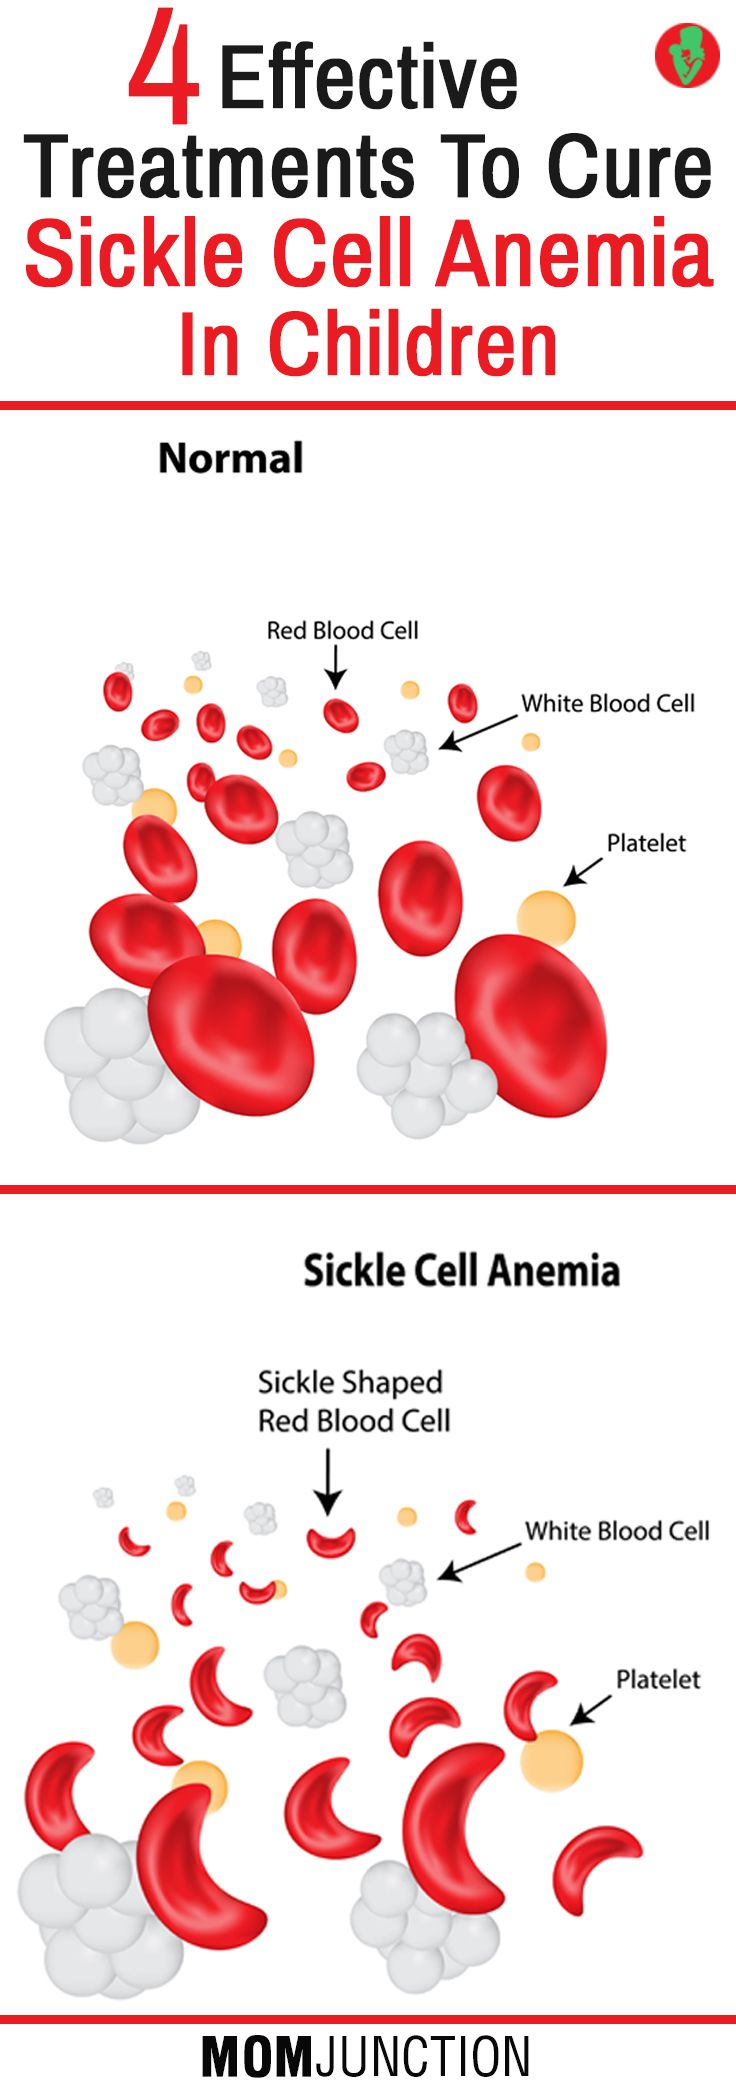 sickle cell anemia research paper pdf Unit for the social study of thalassaemia & sickle cell research report www tascunitcom economic and social research council grant res-000-23-1486 for this paper 1 a survey of all local authorities in england about their response to the issue of scd (107/150 replied) 2 a survey of 569 pupils living with.